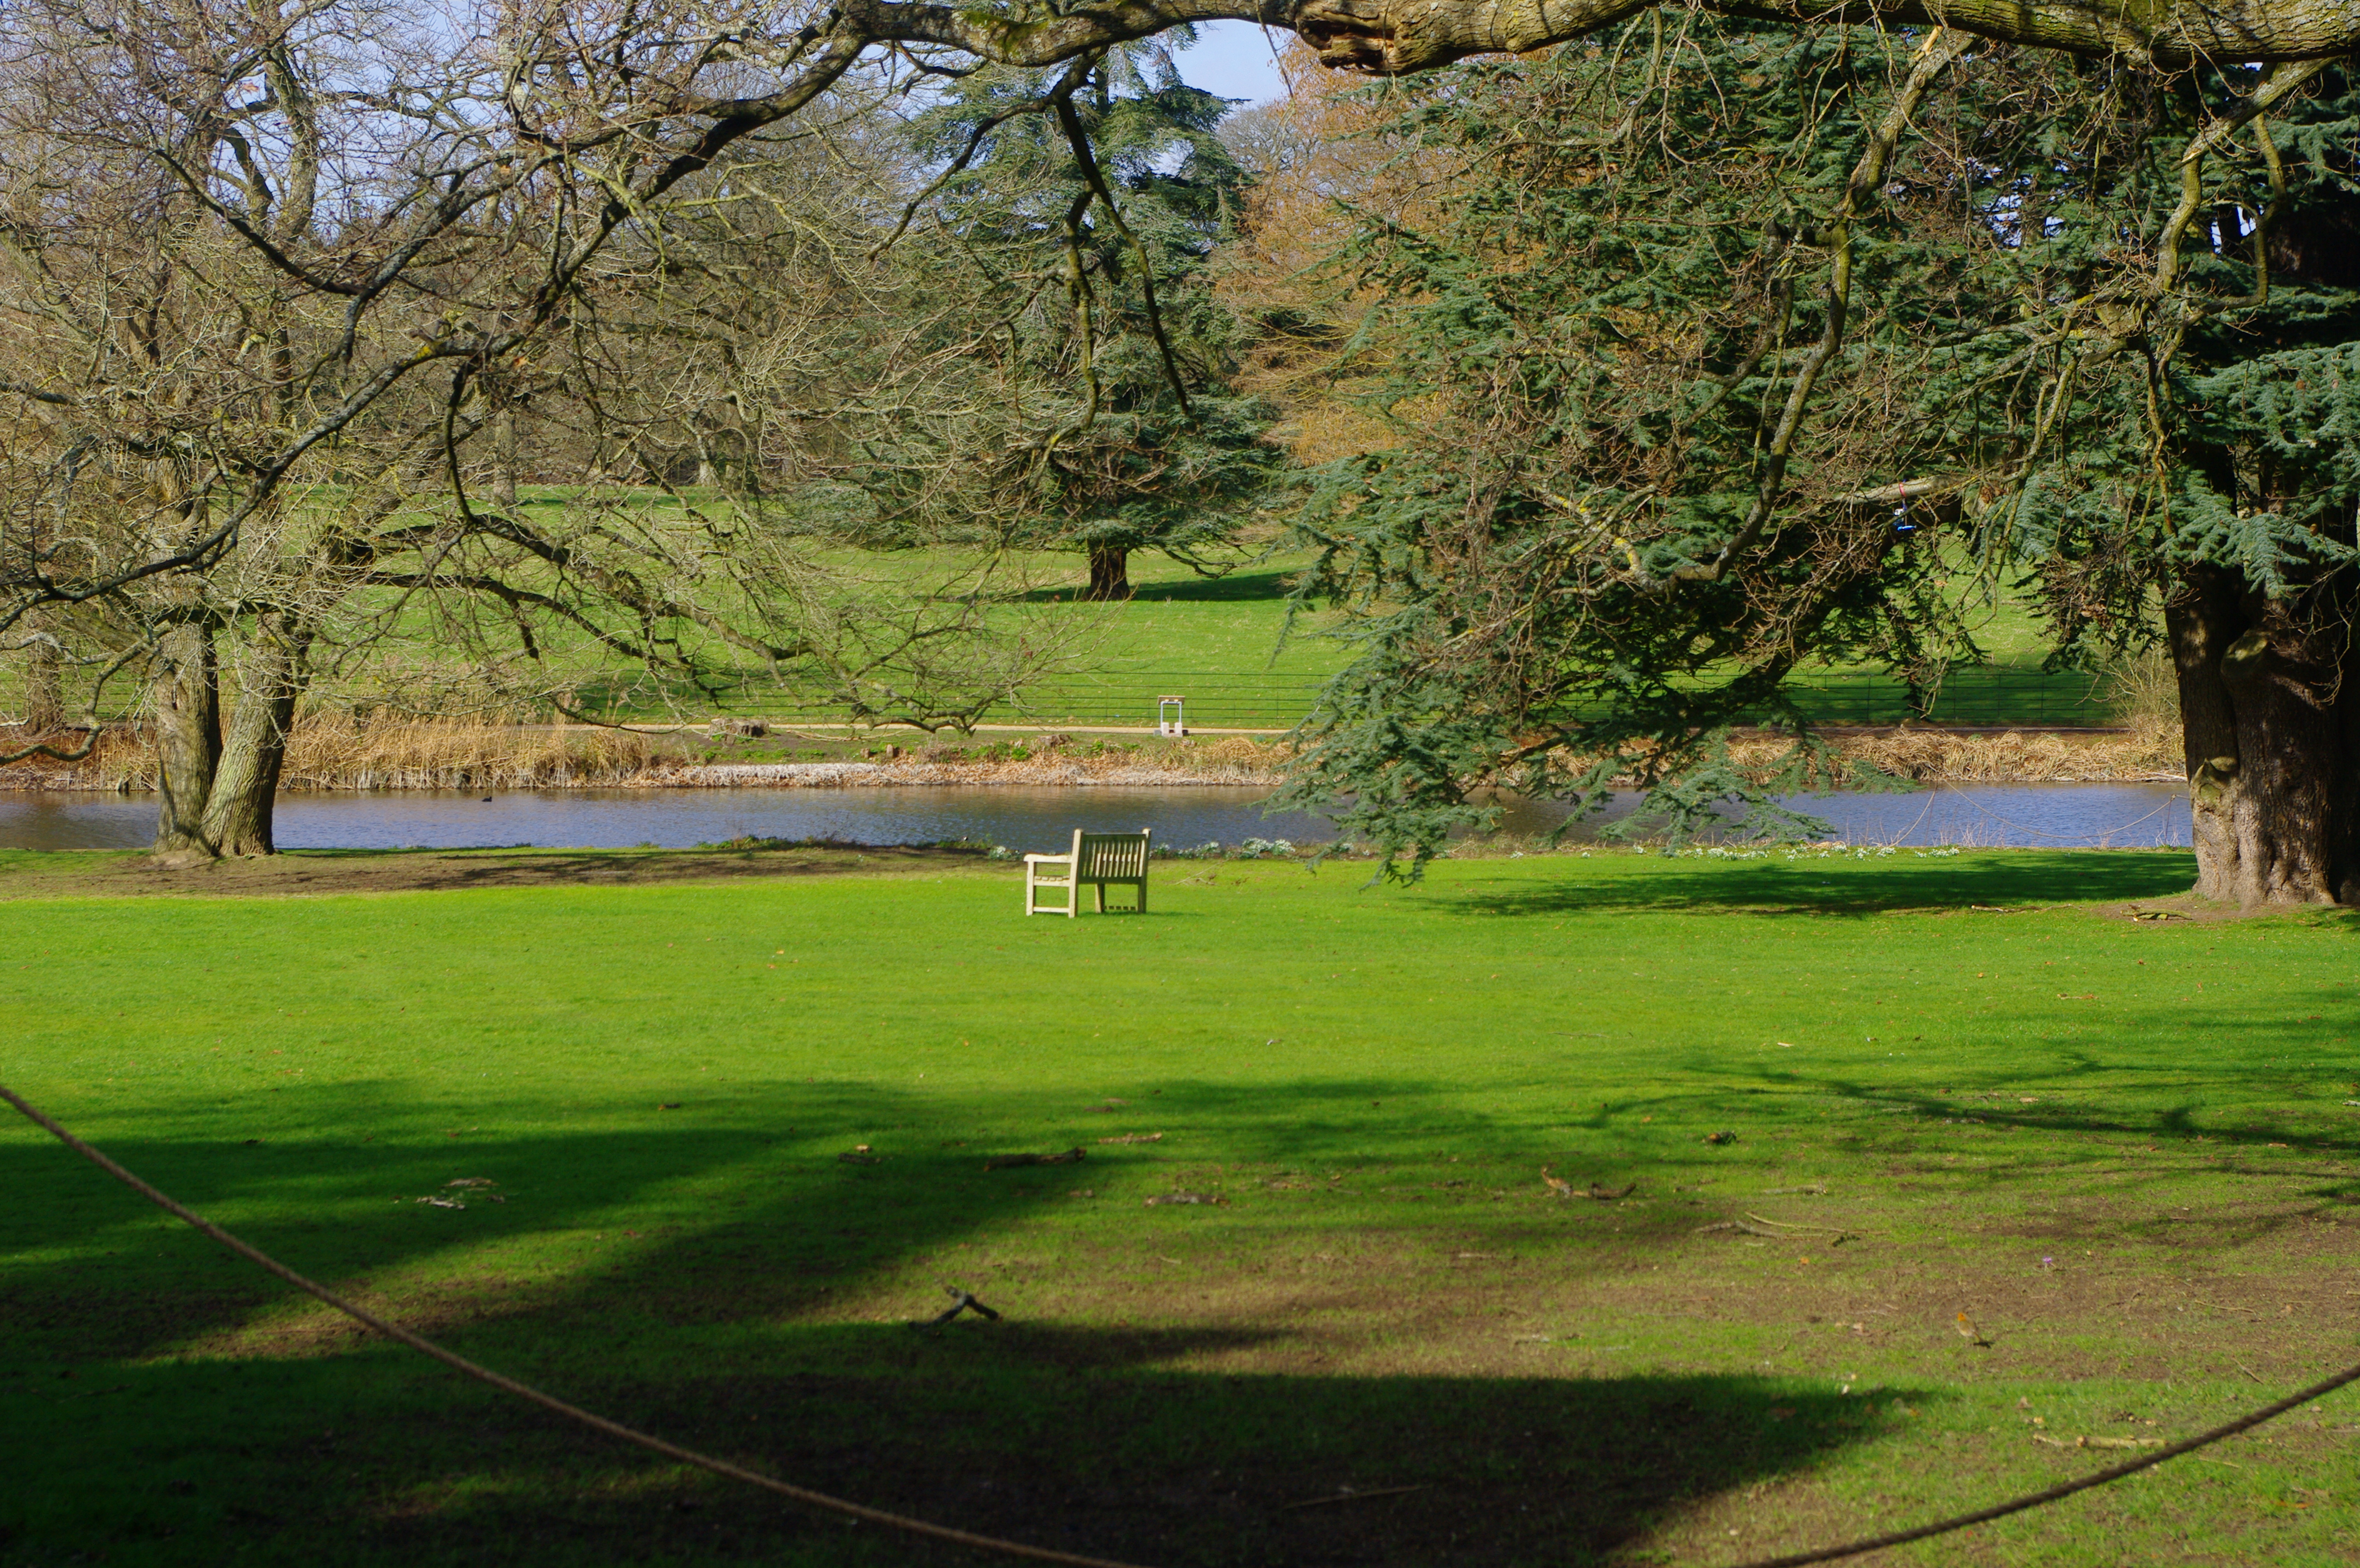 Photo of The lawns and lake at the front of The Vyne